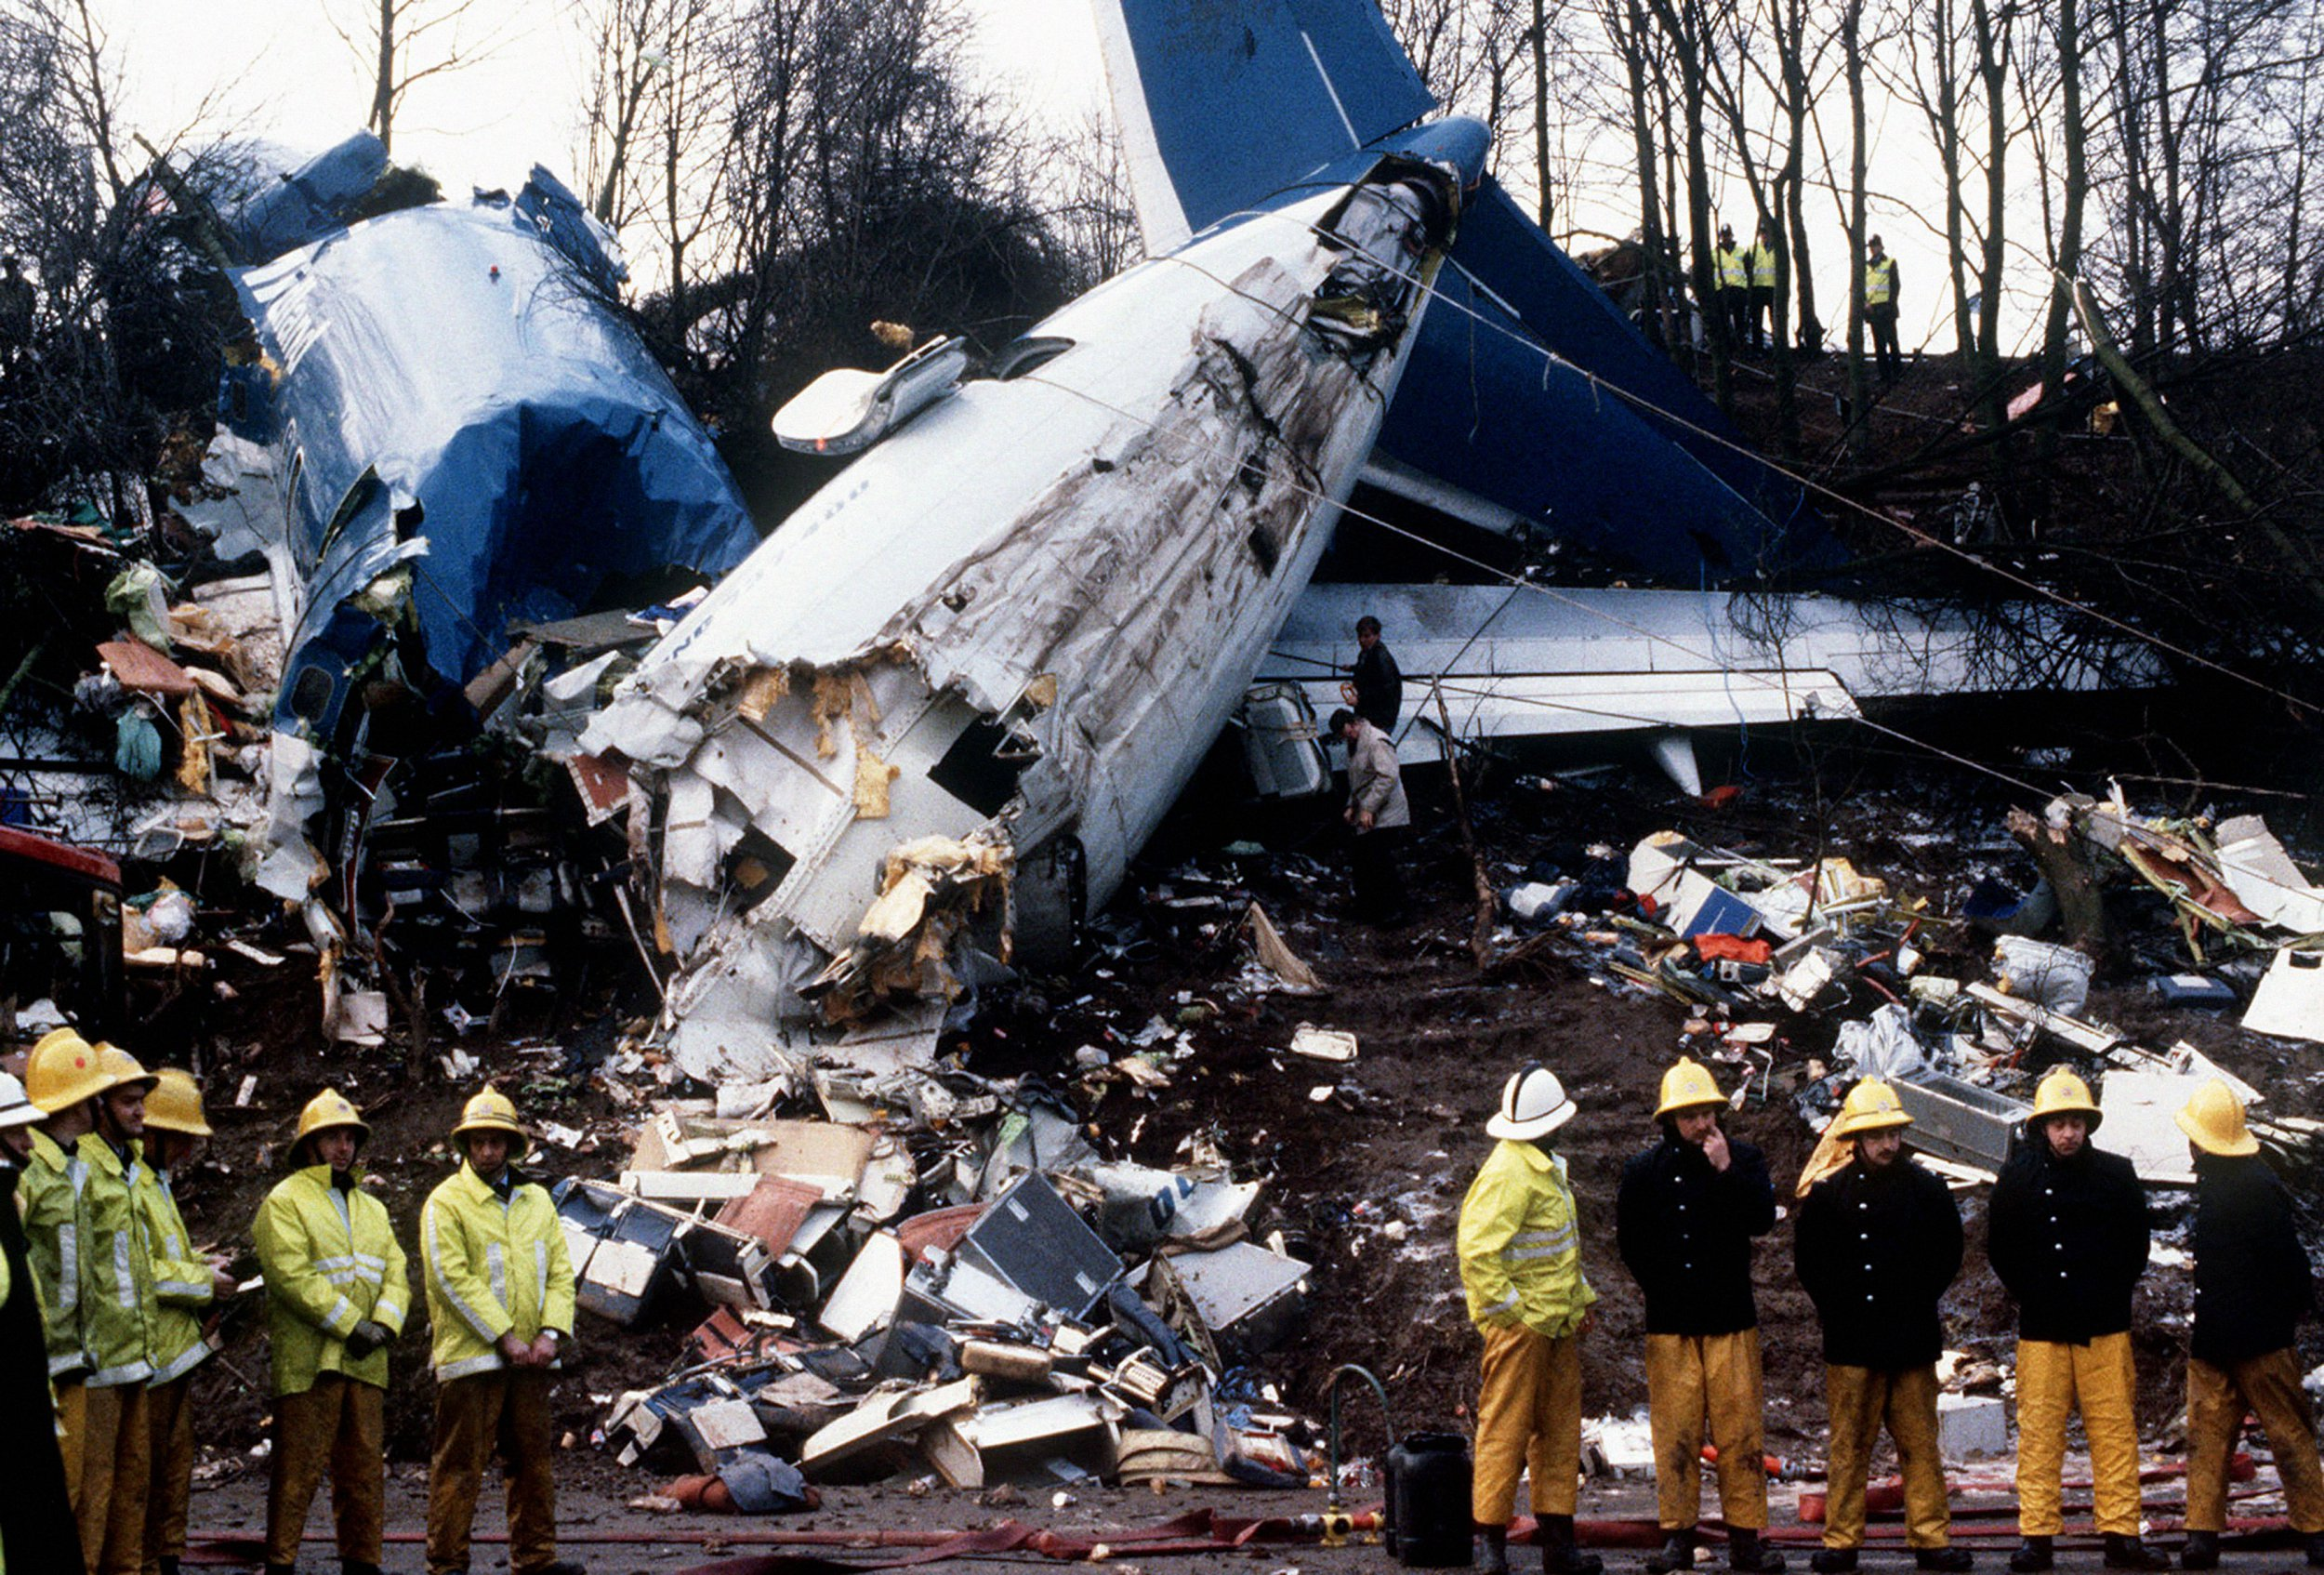 File photo dated Jan 1989 of a Belfast-bound British Midland Boeing 737 which crashed on an embankment of the M1 at Kegworth, on the approach to East Midlands airport, after suffering engine trouble on the night of January 8, 1989.